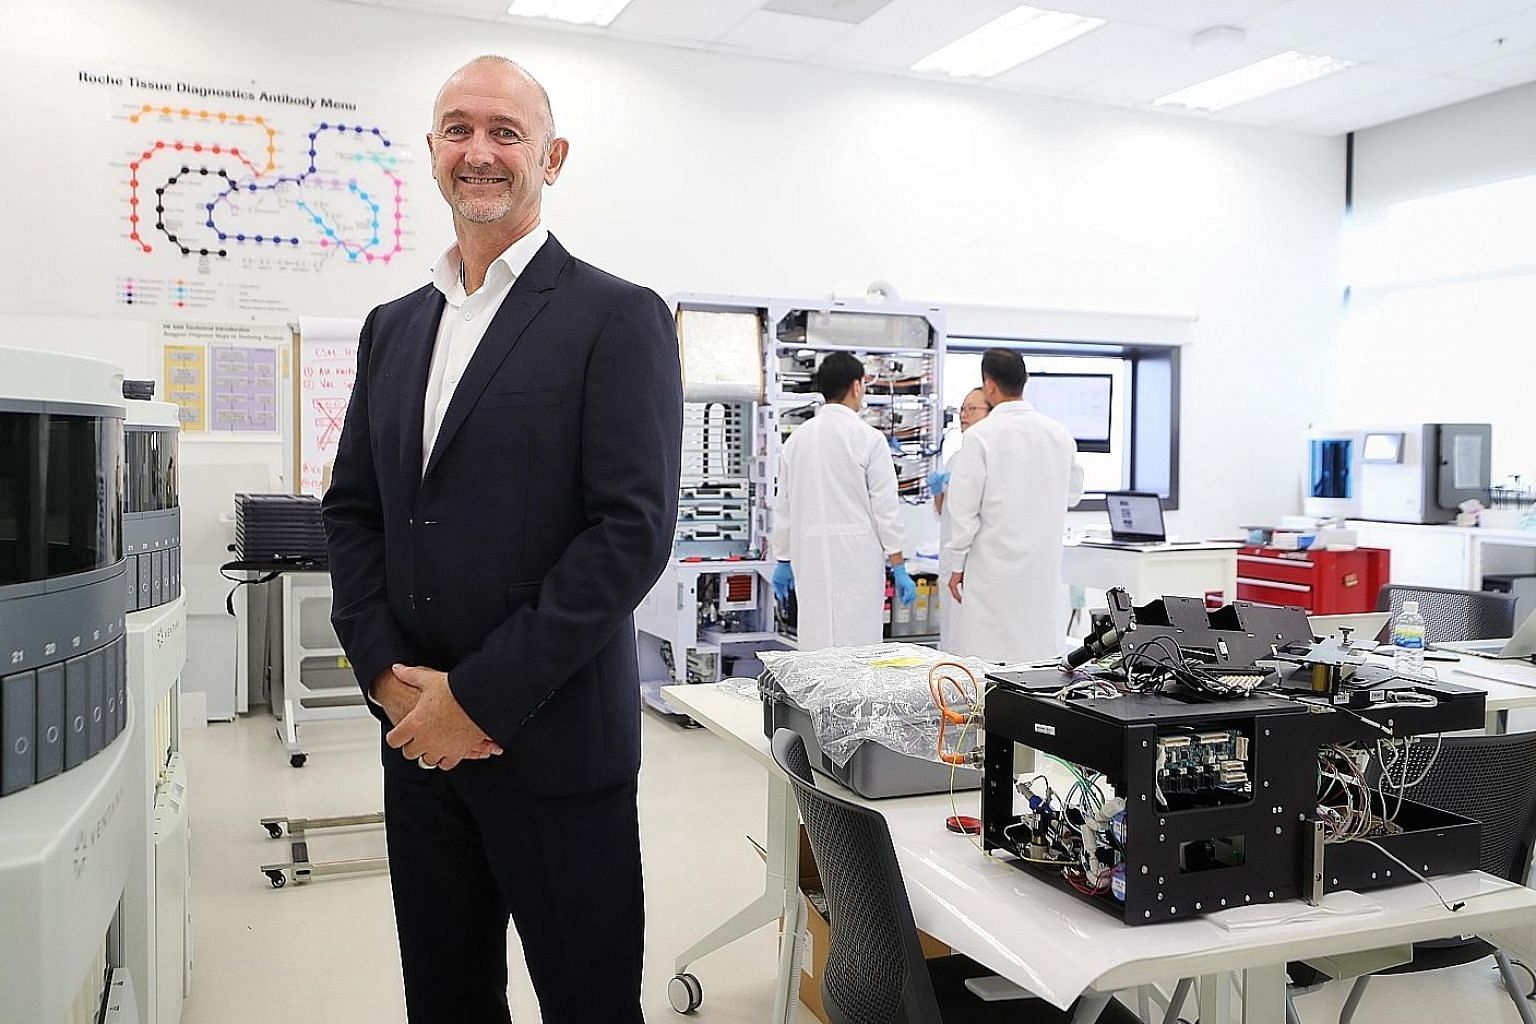 Mr Lance Little, managing director of Roche Diagnostics Asia Pacific, says there are many new start-ups that can add value to the healthcare environment, but that they face challenges when taking their ideas to market. In that connection, multination